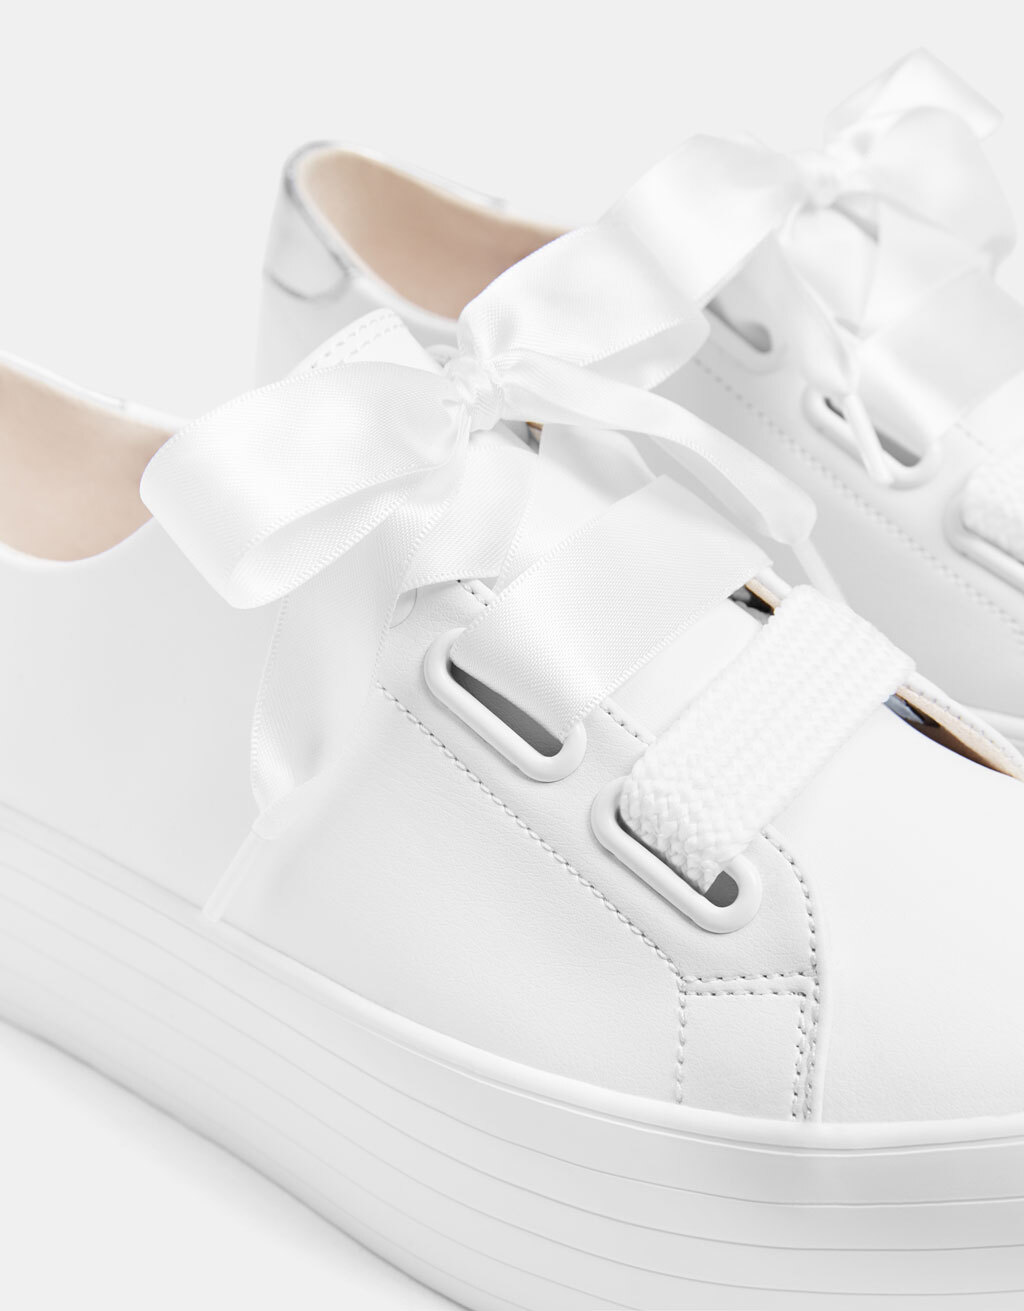 Bershka – Platform sneakers with XL laces